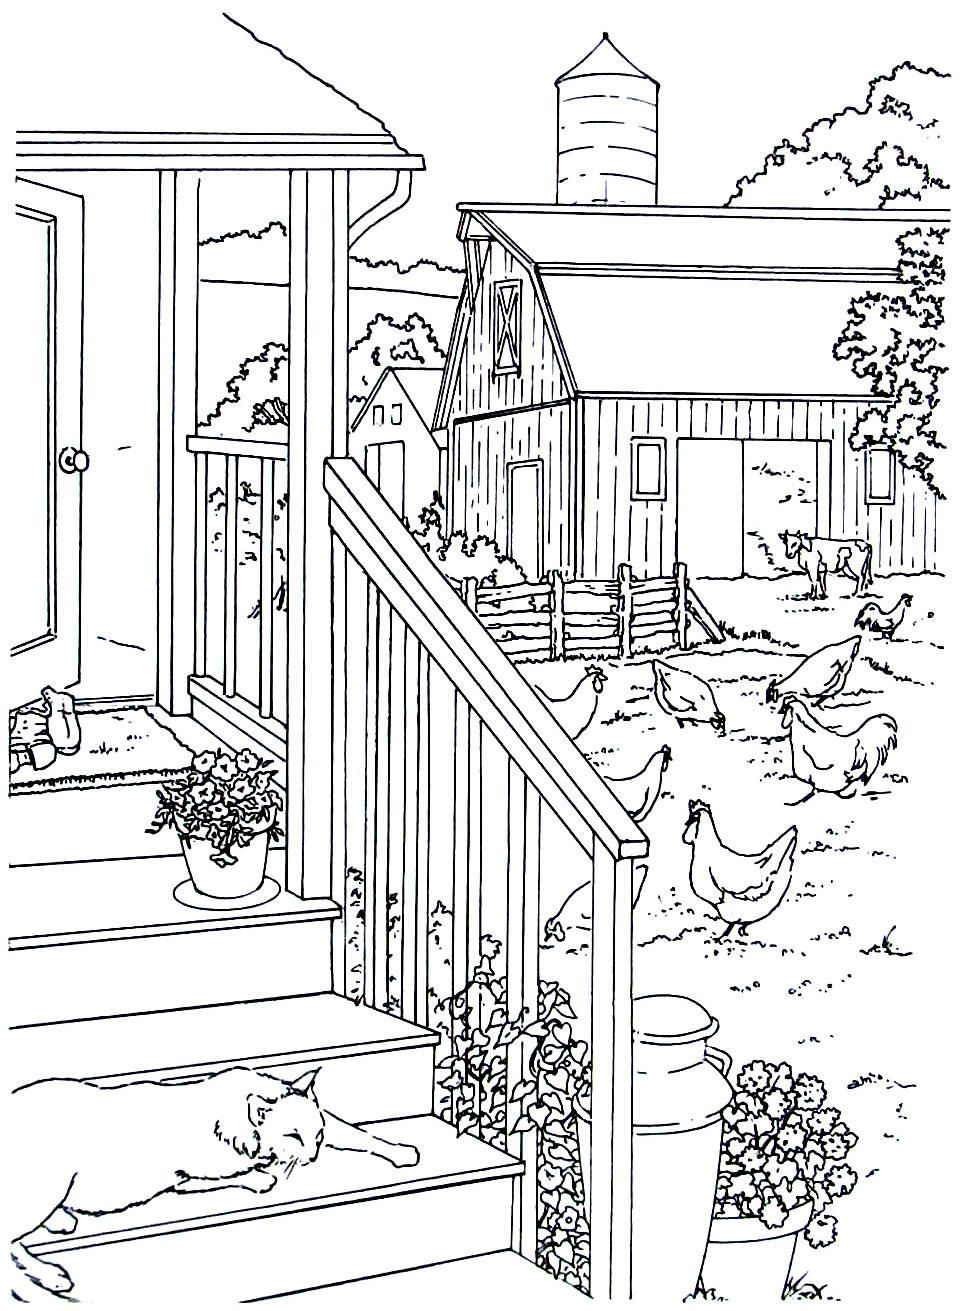 - Country House With Chickens - Living In The Country Coloring Book